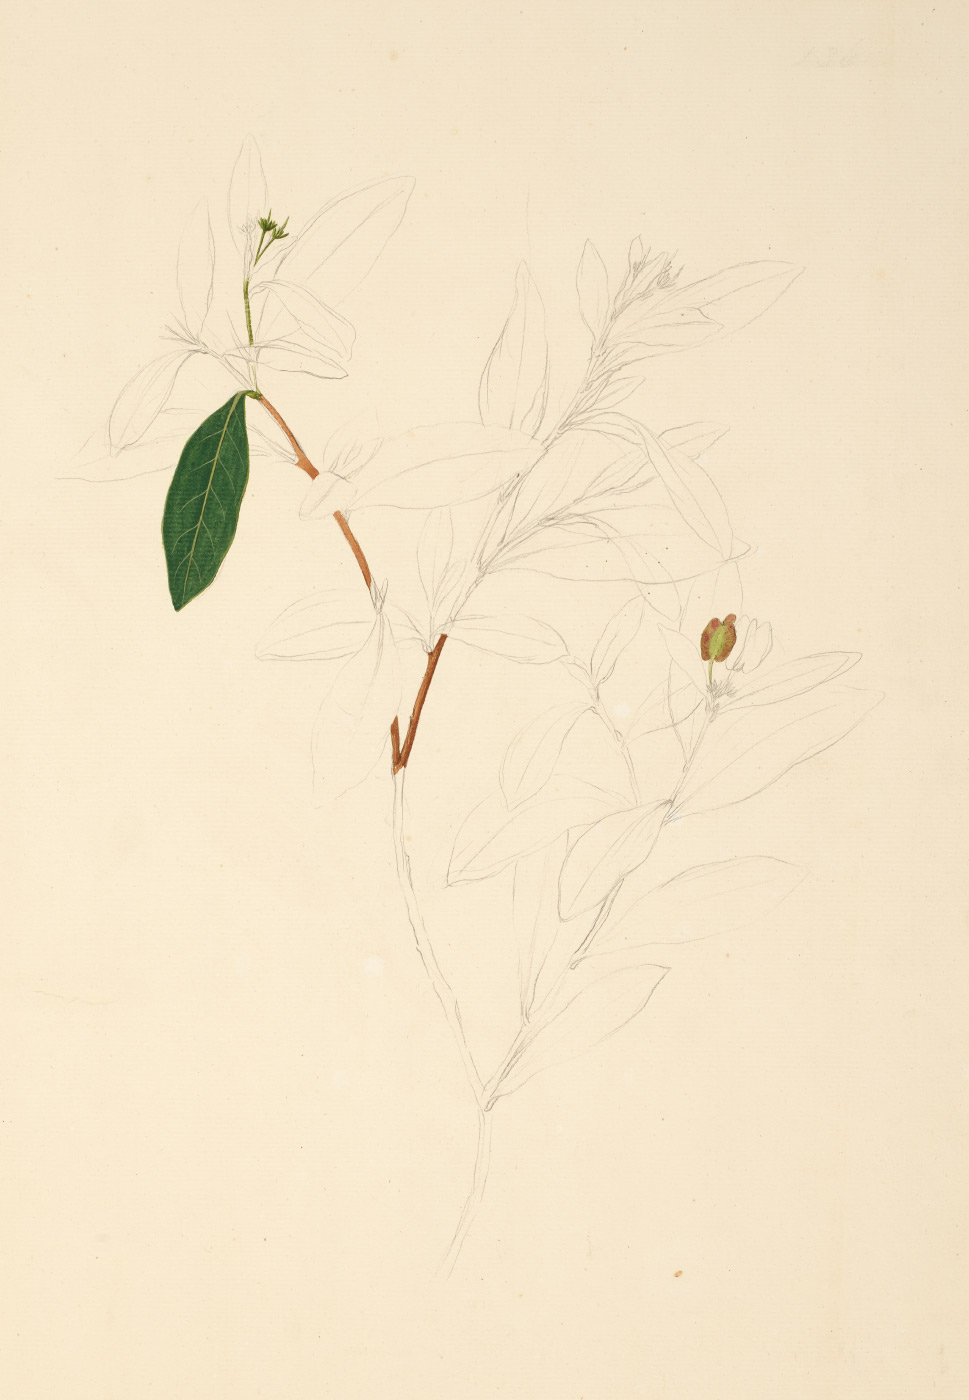 Black and white sketch of a plant, with one leaf painted green and part of the stem painted brown. - click to view larger image